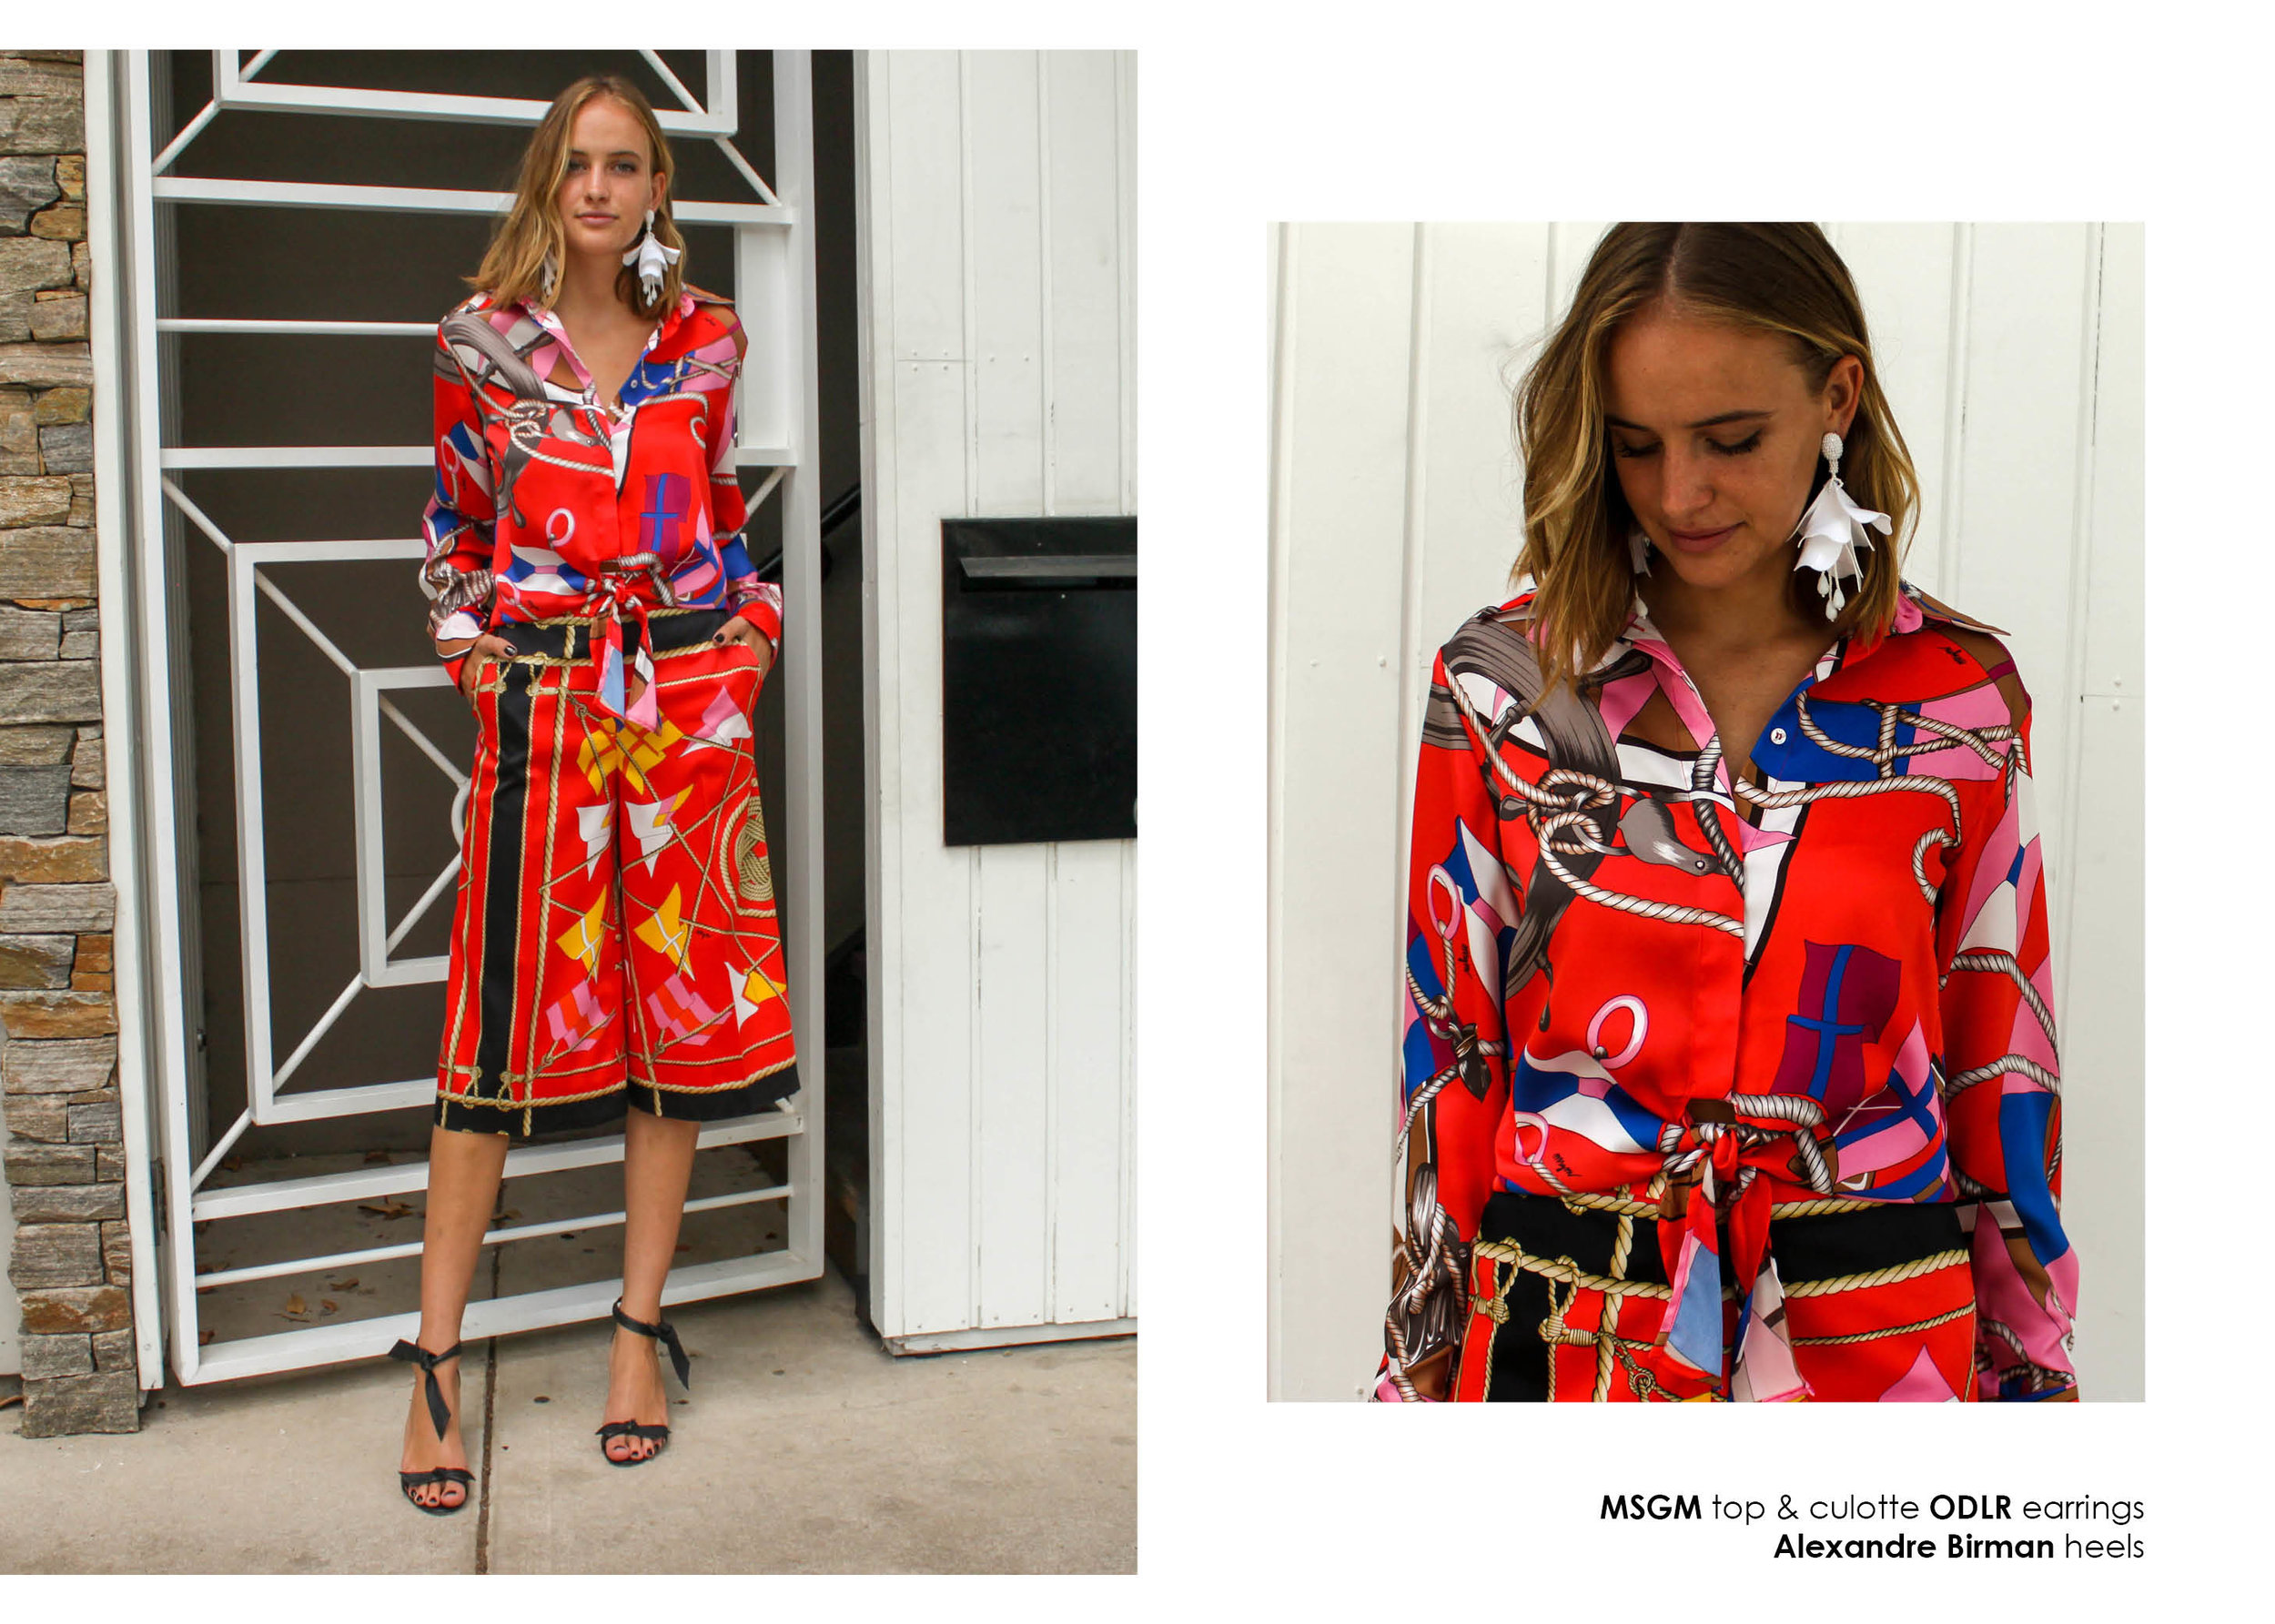 MSGM-Feb19-newsletter-layout-11.jpg